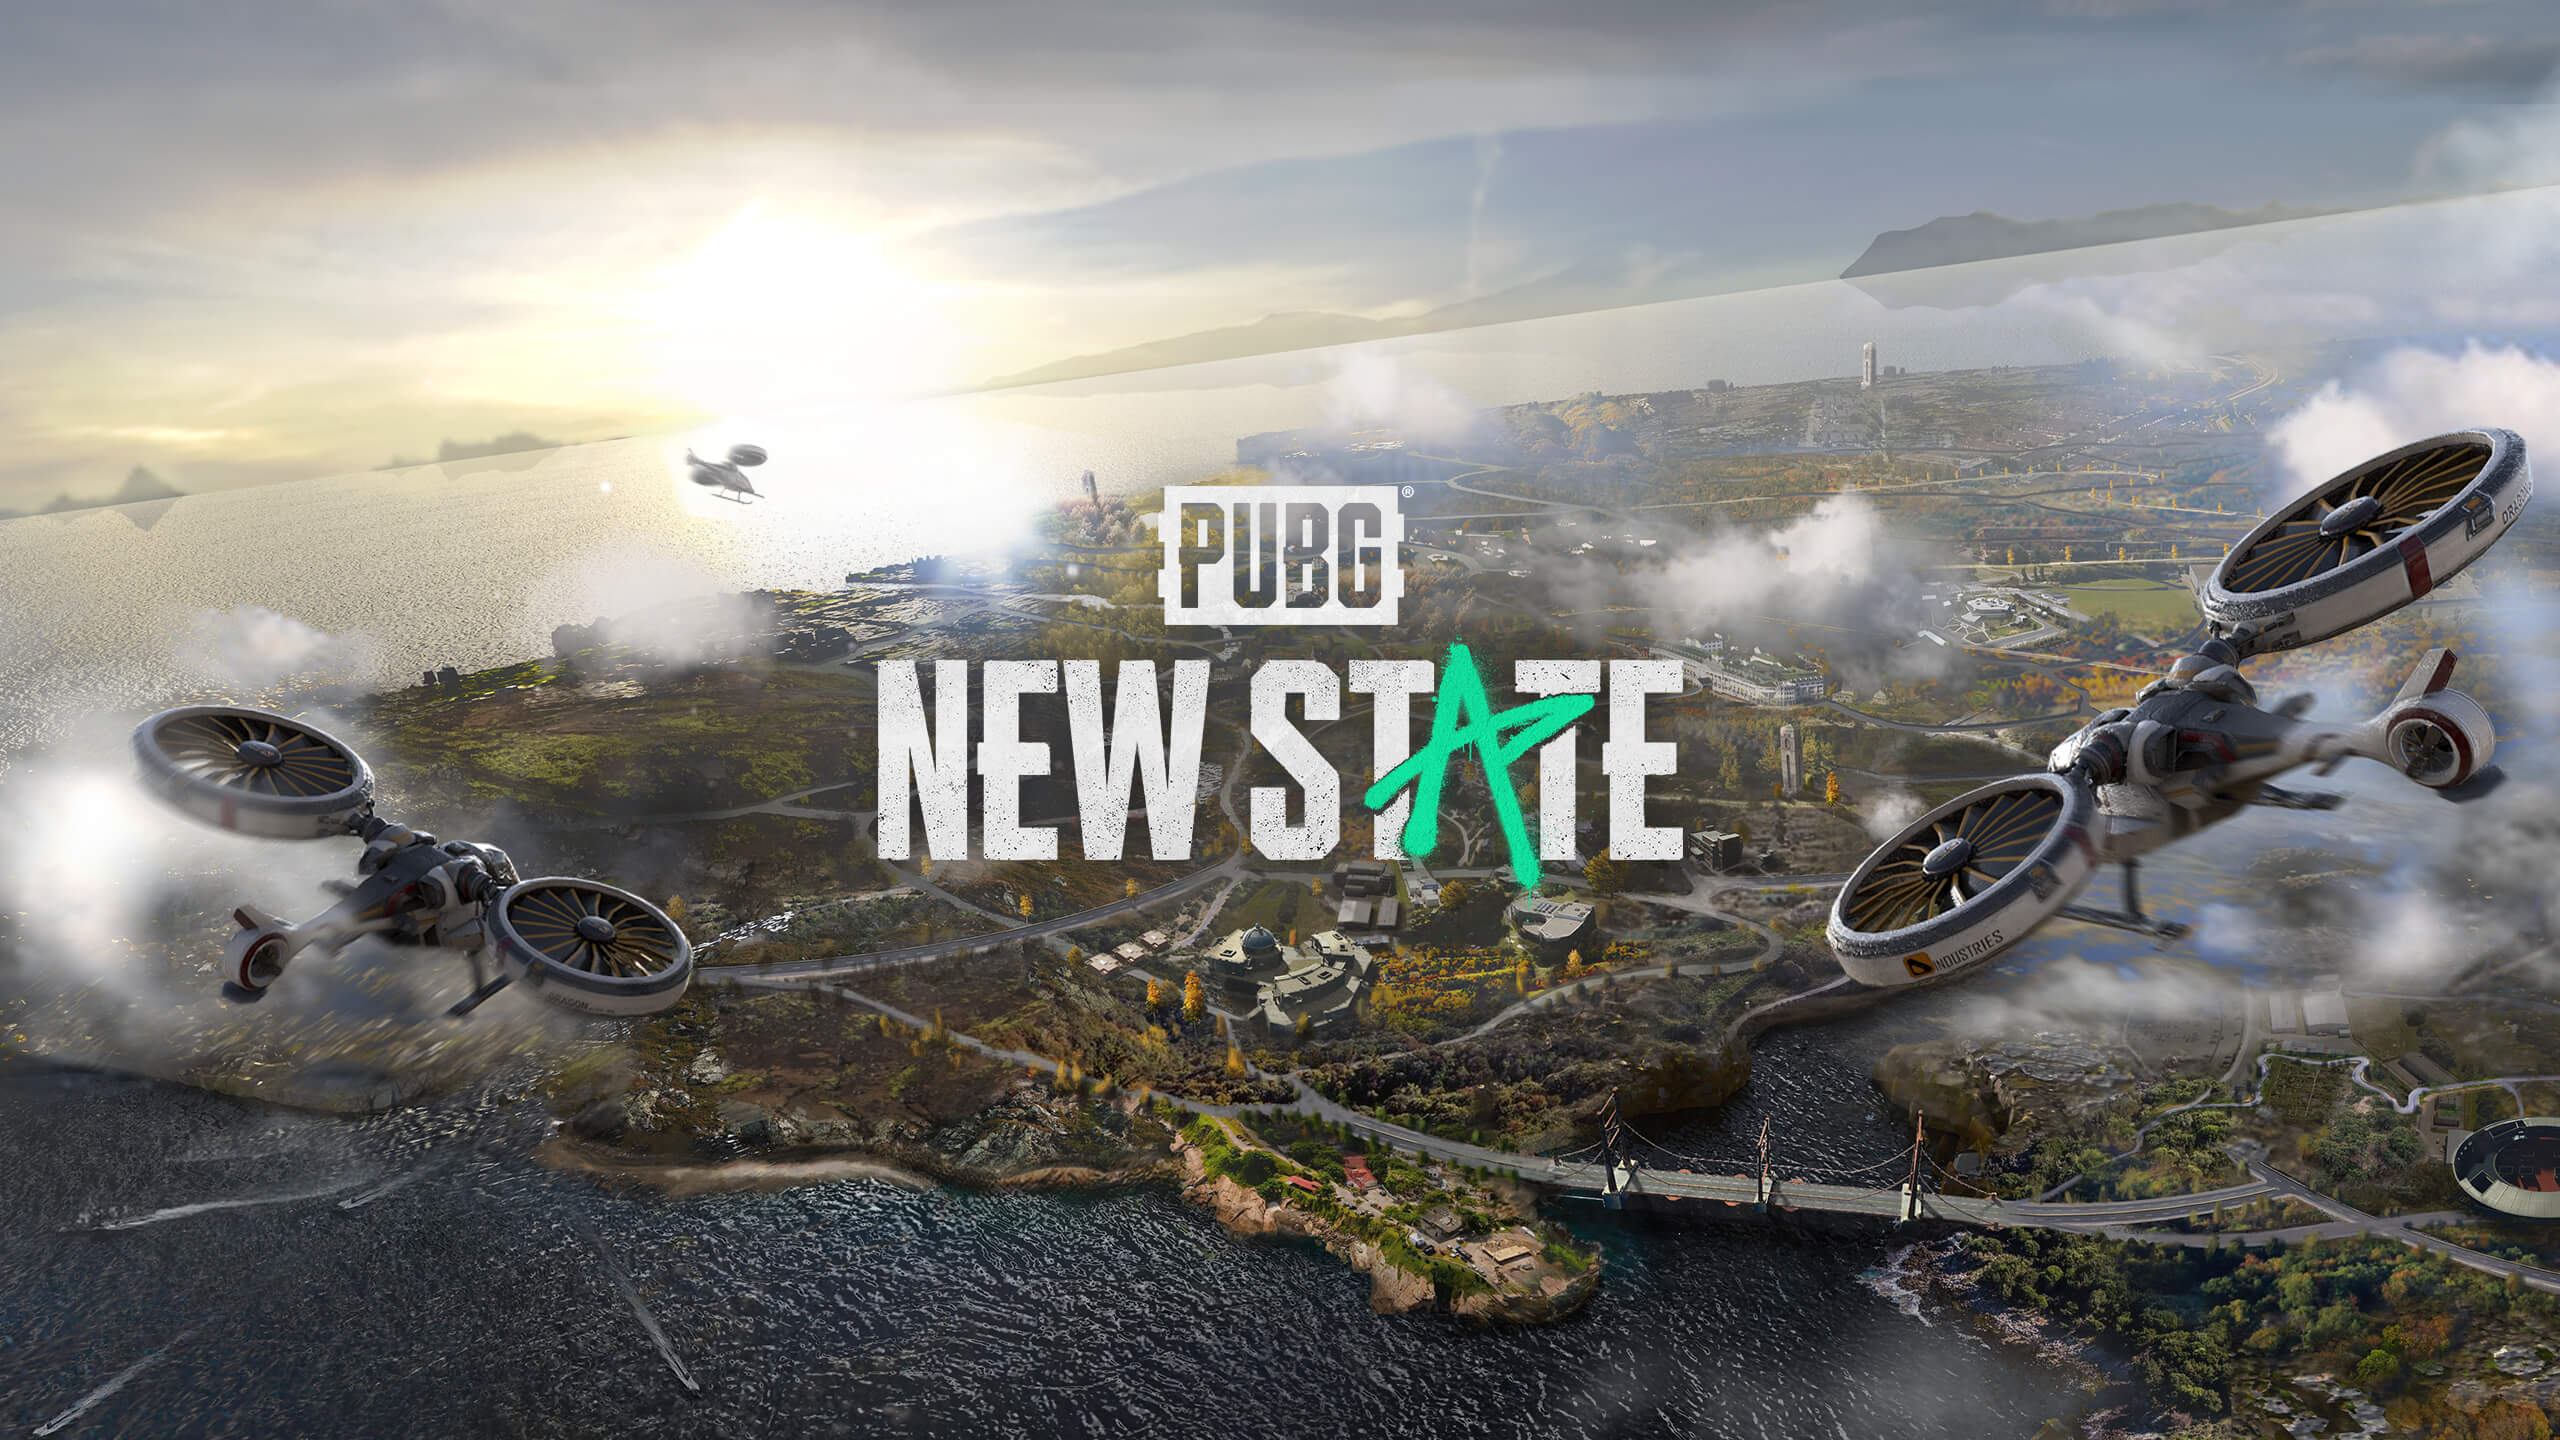 PUBG NEW STATE Announced as The Next Evolution of Battle Royale 2560x1440